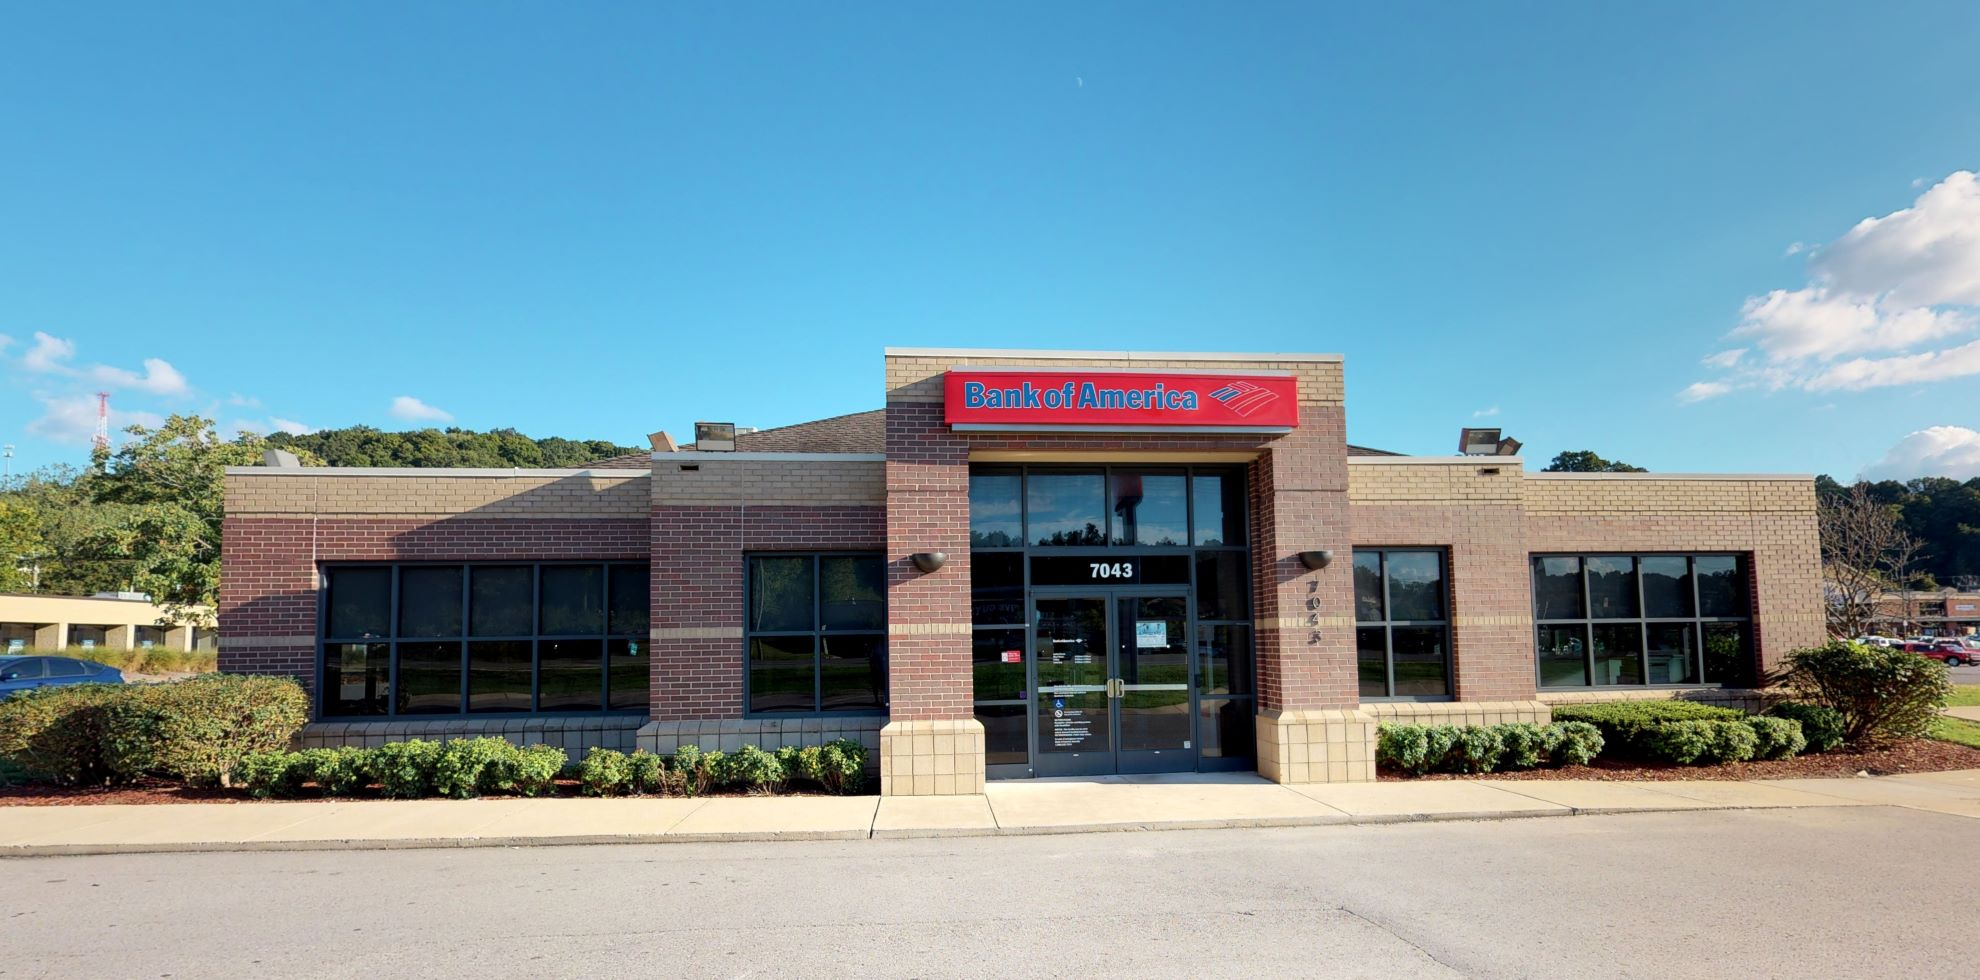 Bank of America financial center with drive-thru ATM | 7043 Highway 70 S, Nashville, TN 37221